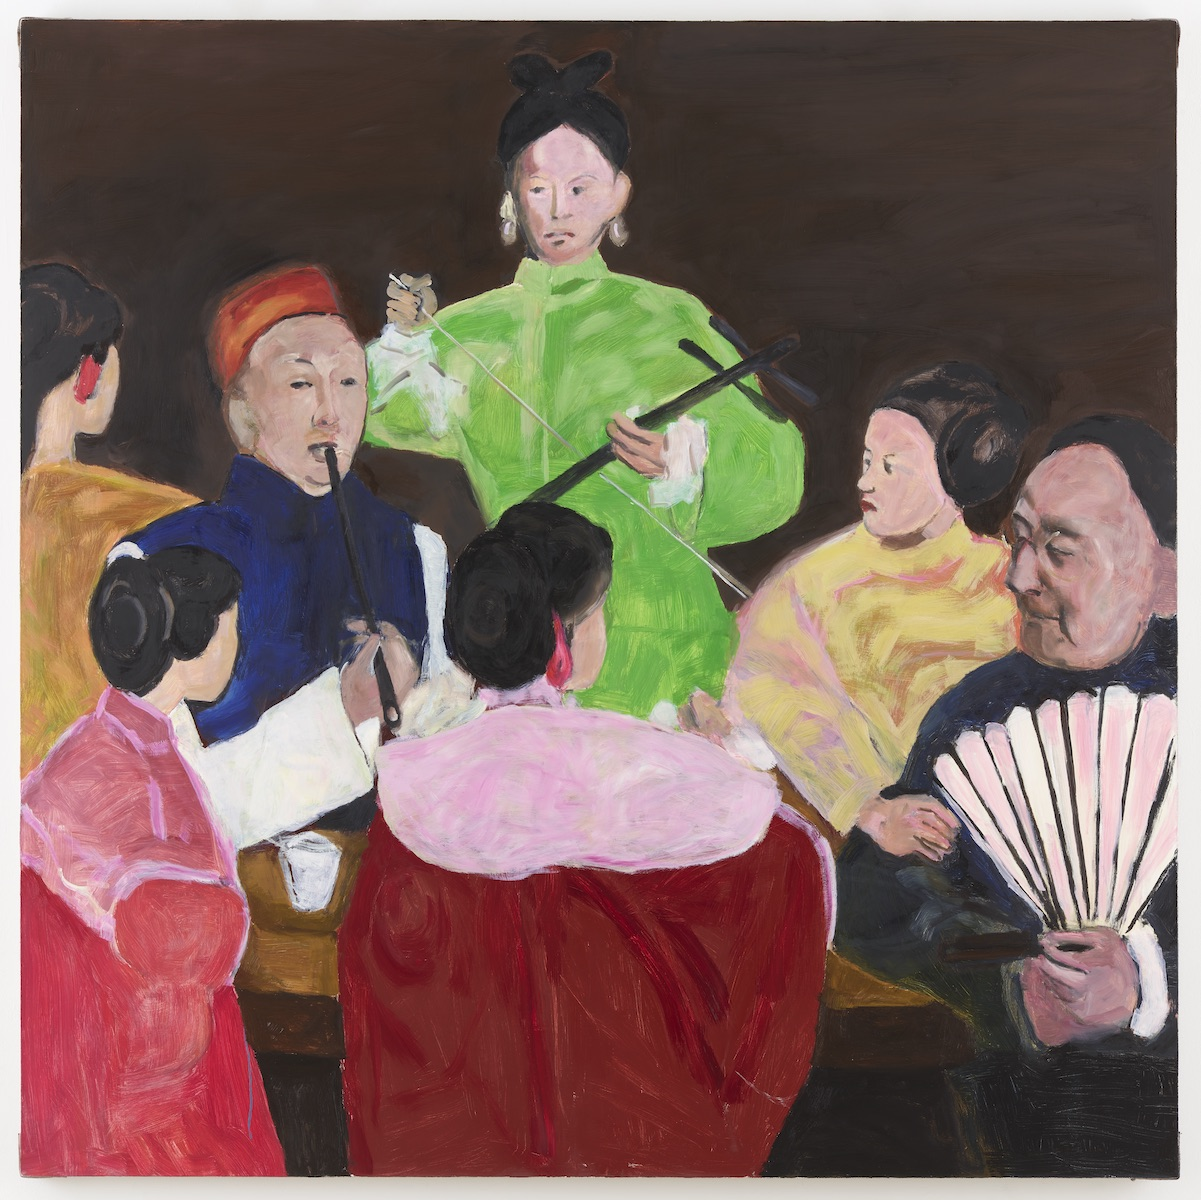 Gang Zhao, MFA '00,  High Tea , oil on canvas, 2018; courtesy of the artist and Greene Naftali, New York.